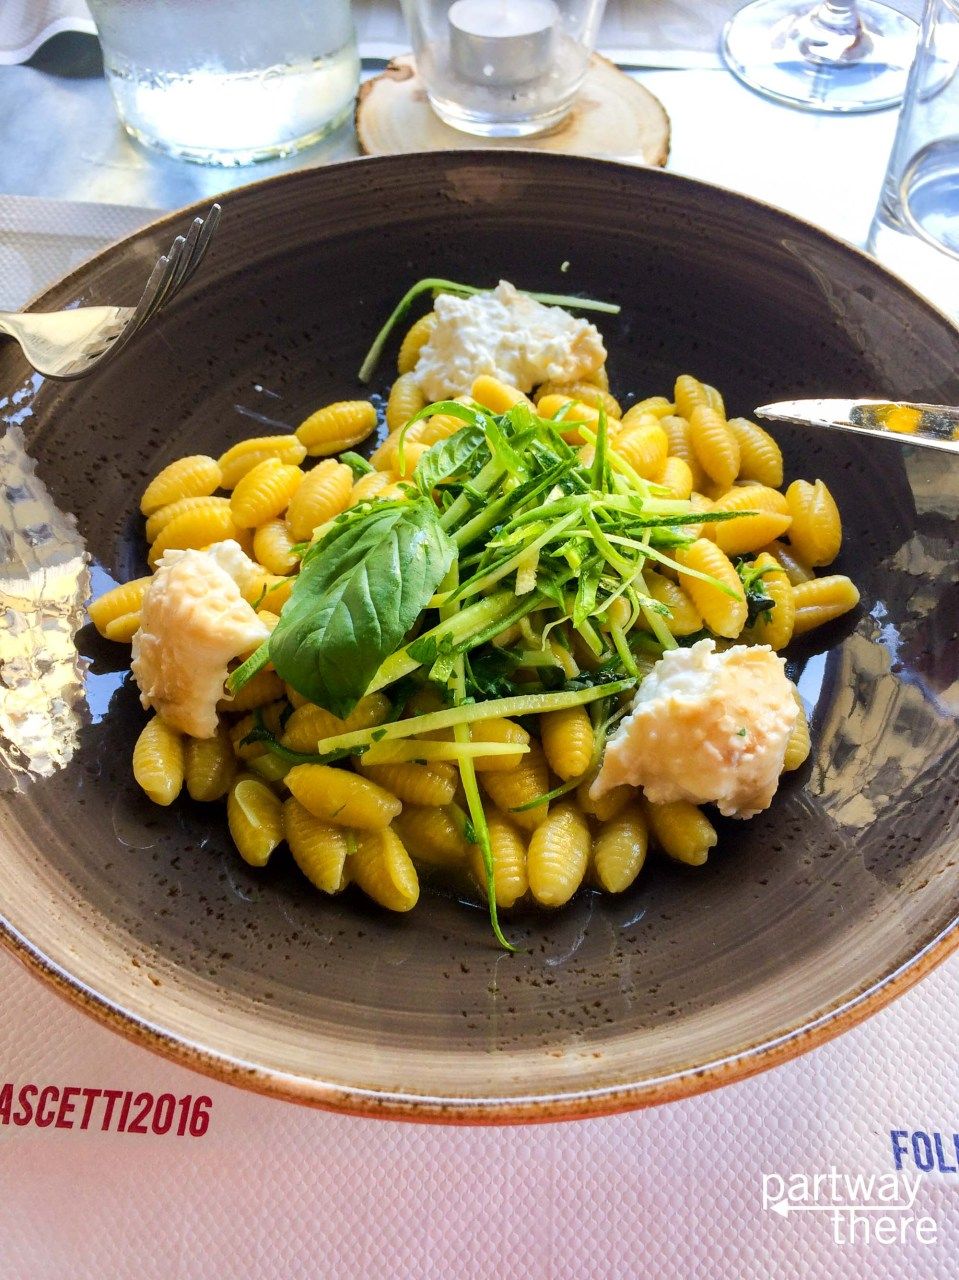 Incredible pasta in Florence, Italy